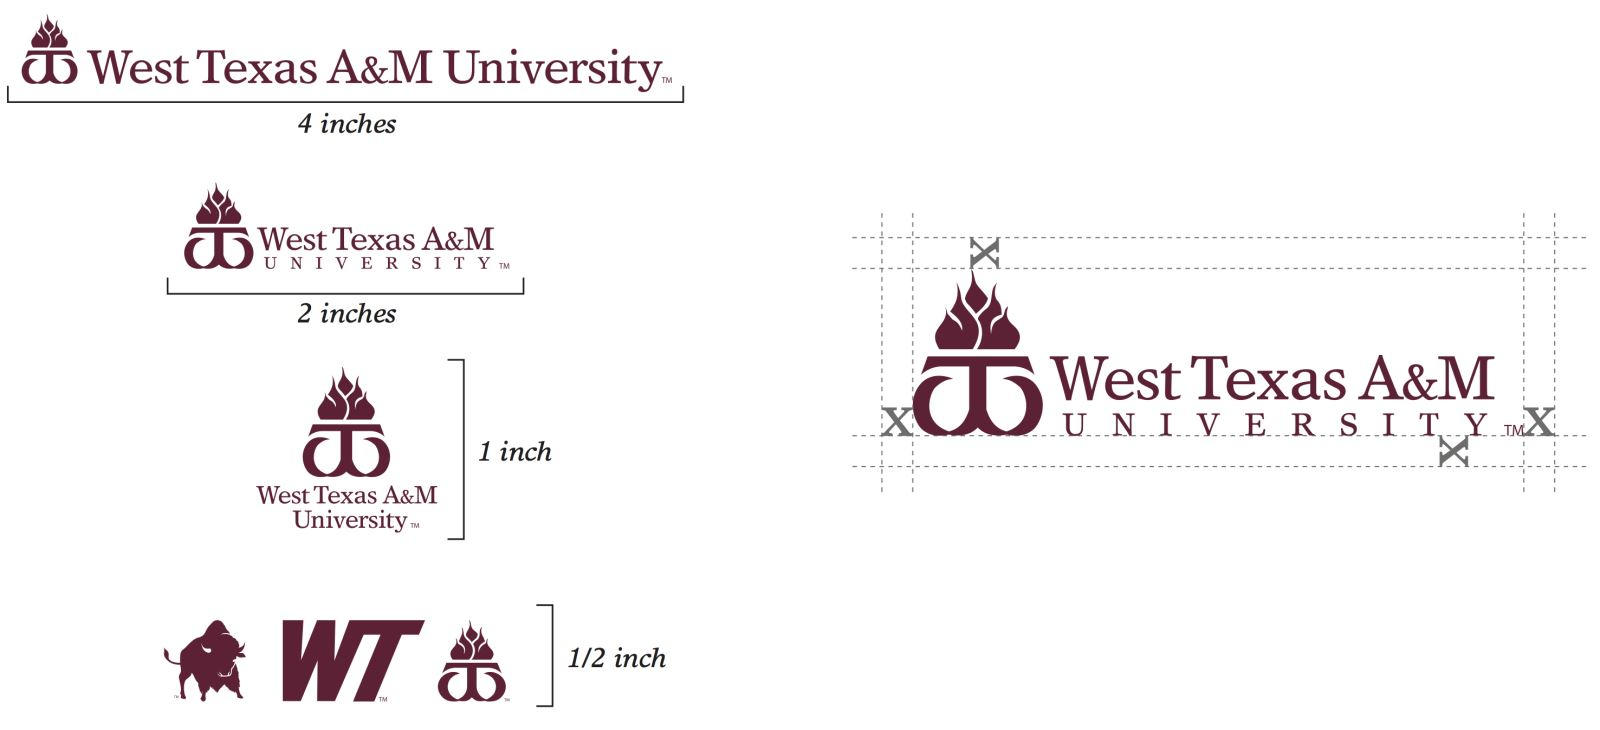 Minimum size applications for University logos are 4-inch width for the horizontal logo, 2-inch width for the stacked logo and 1-inch height for the vertical logo.